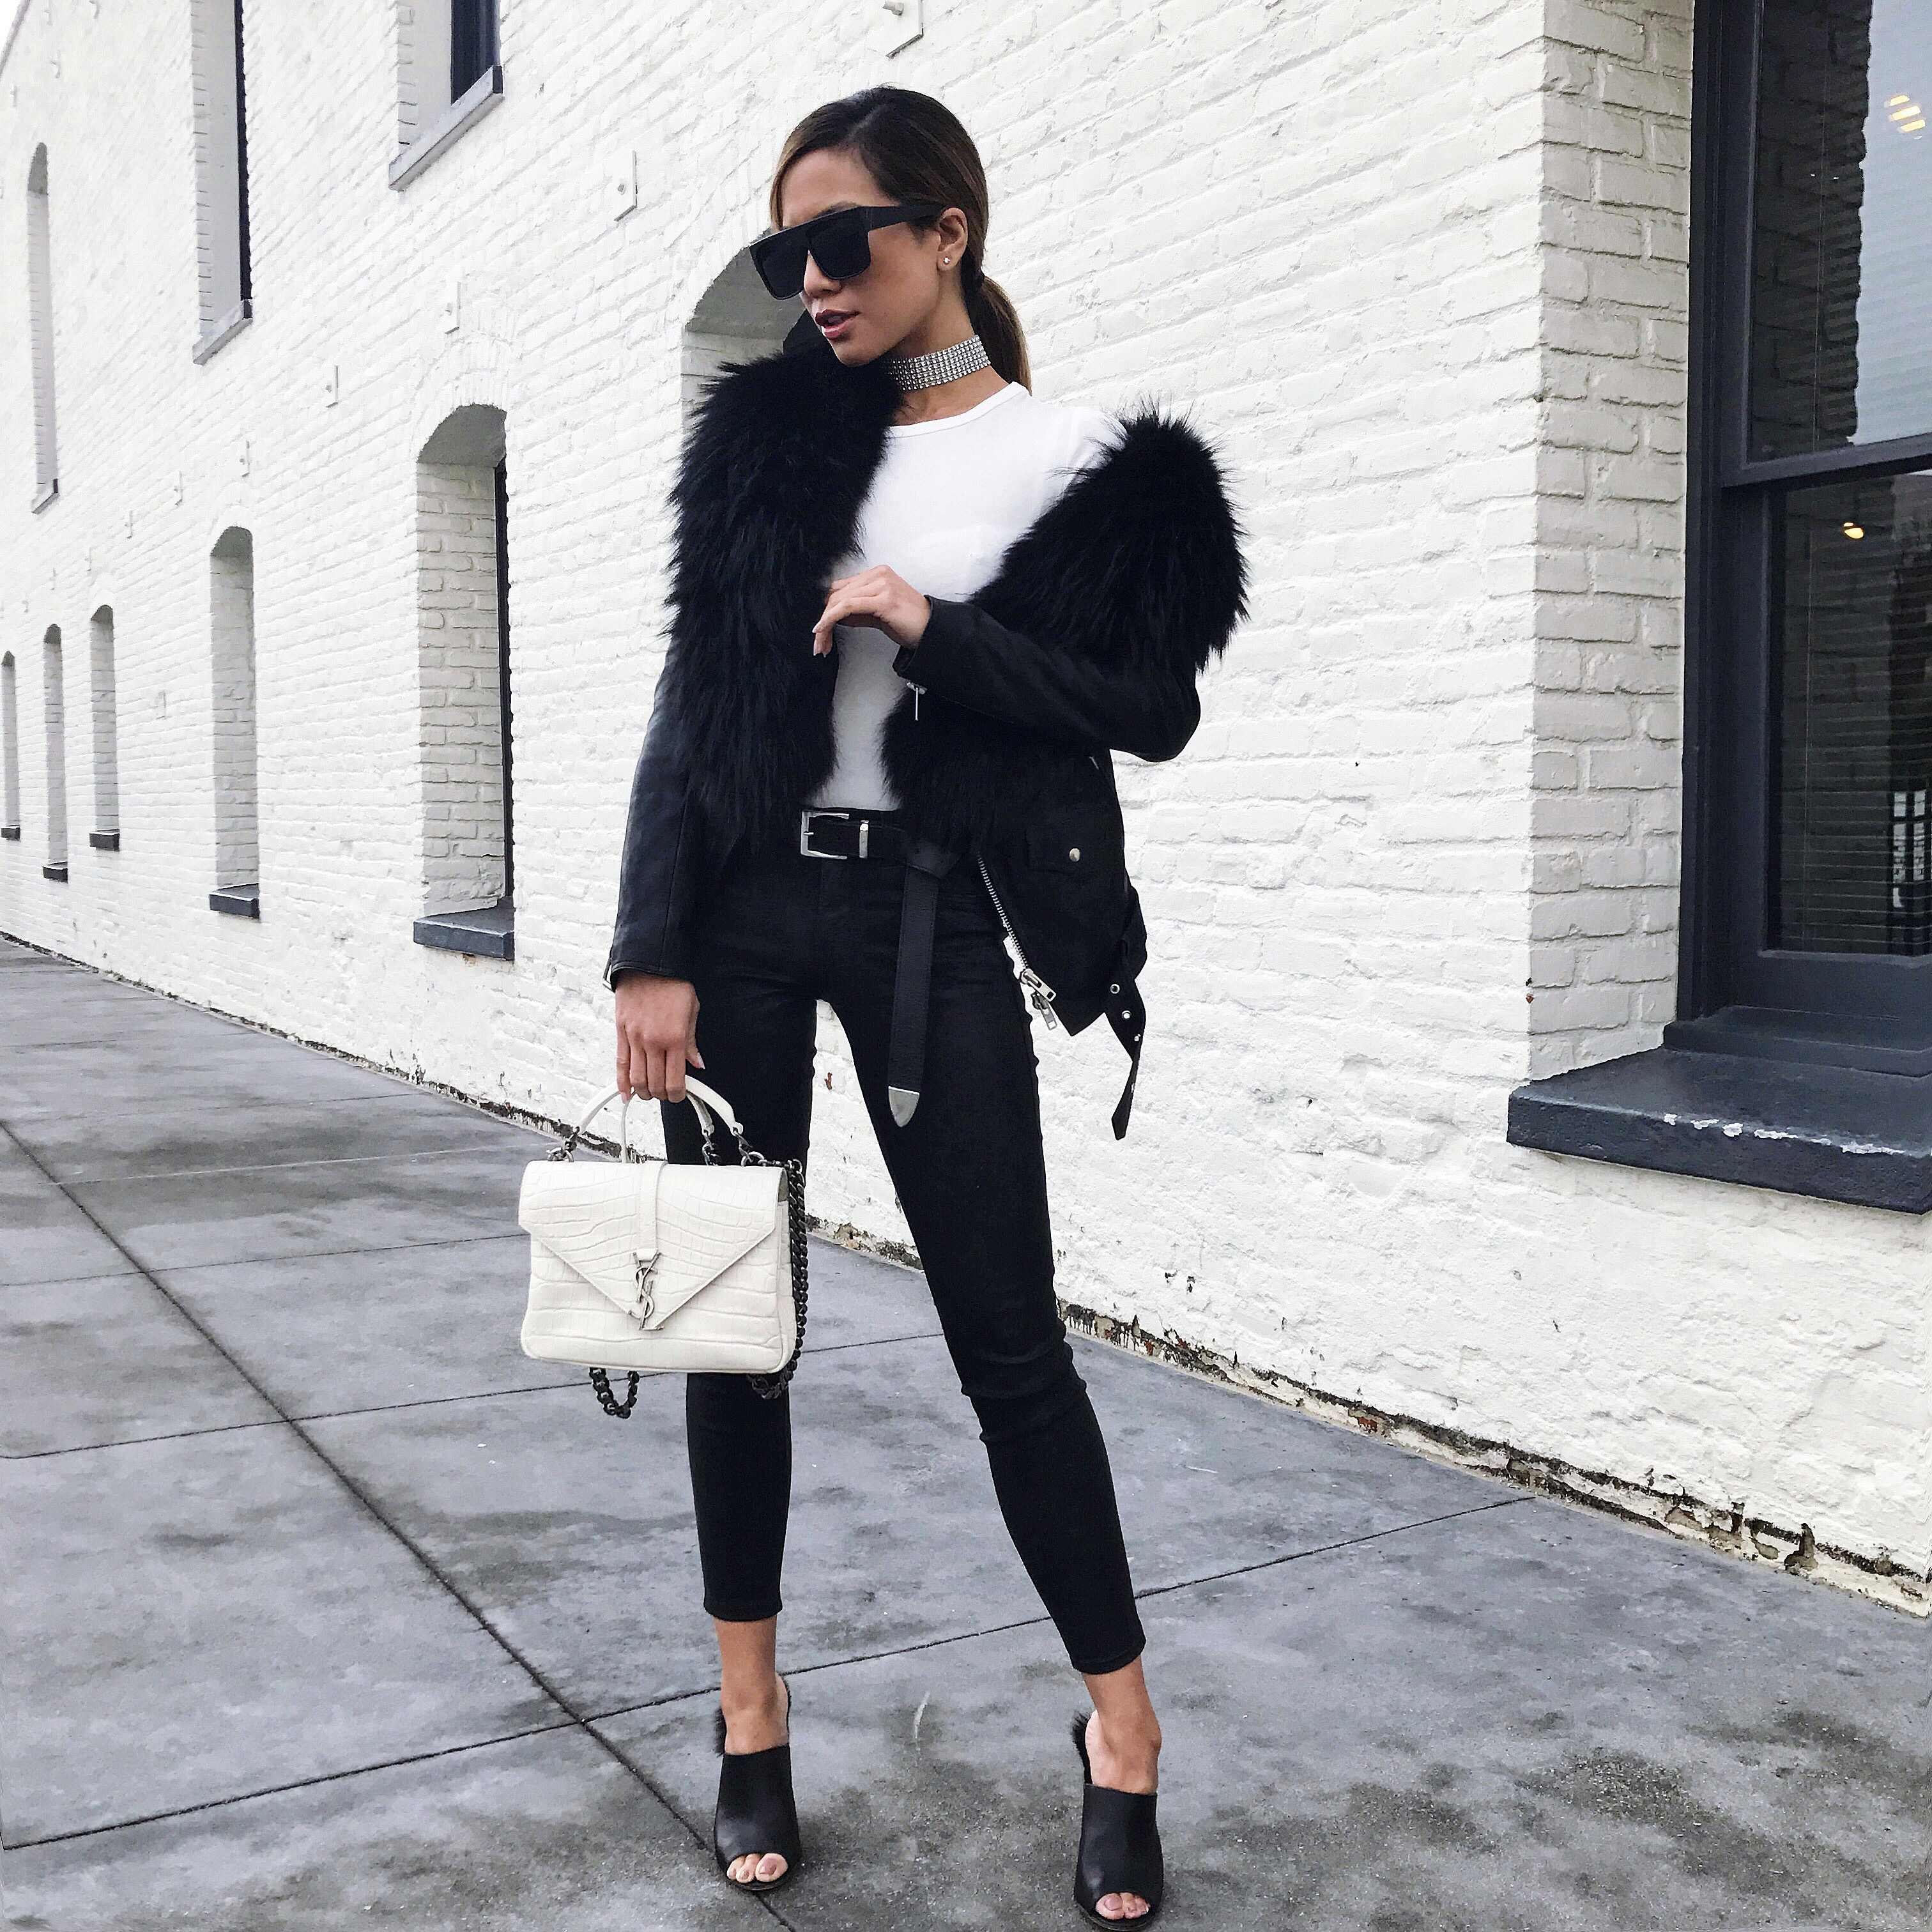 Jessi Malay wearing YSL bag and Faith Connexion Jacket